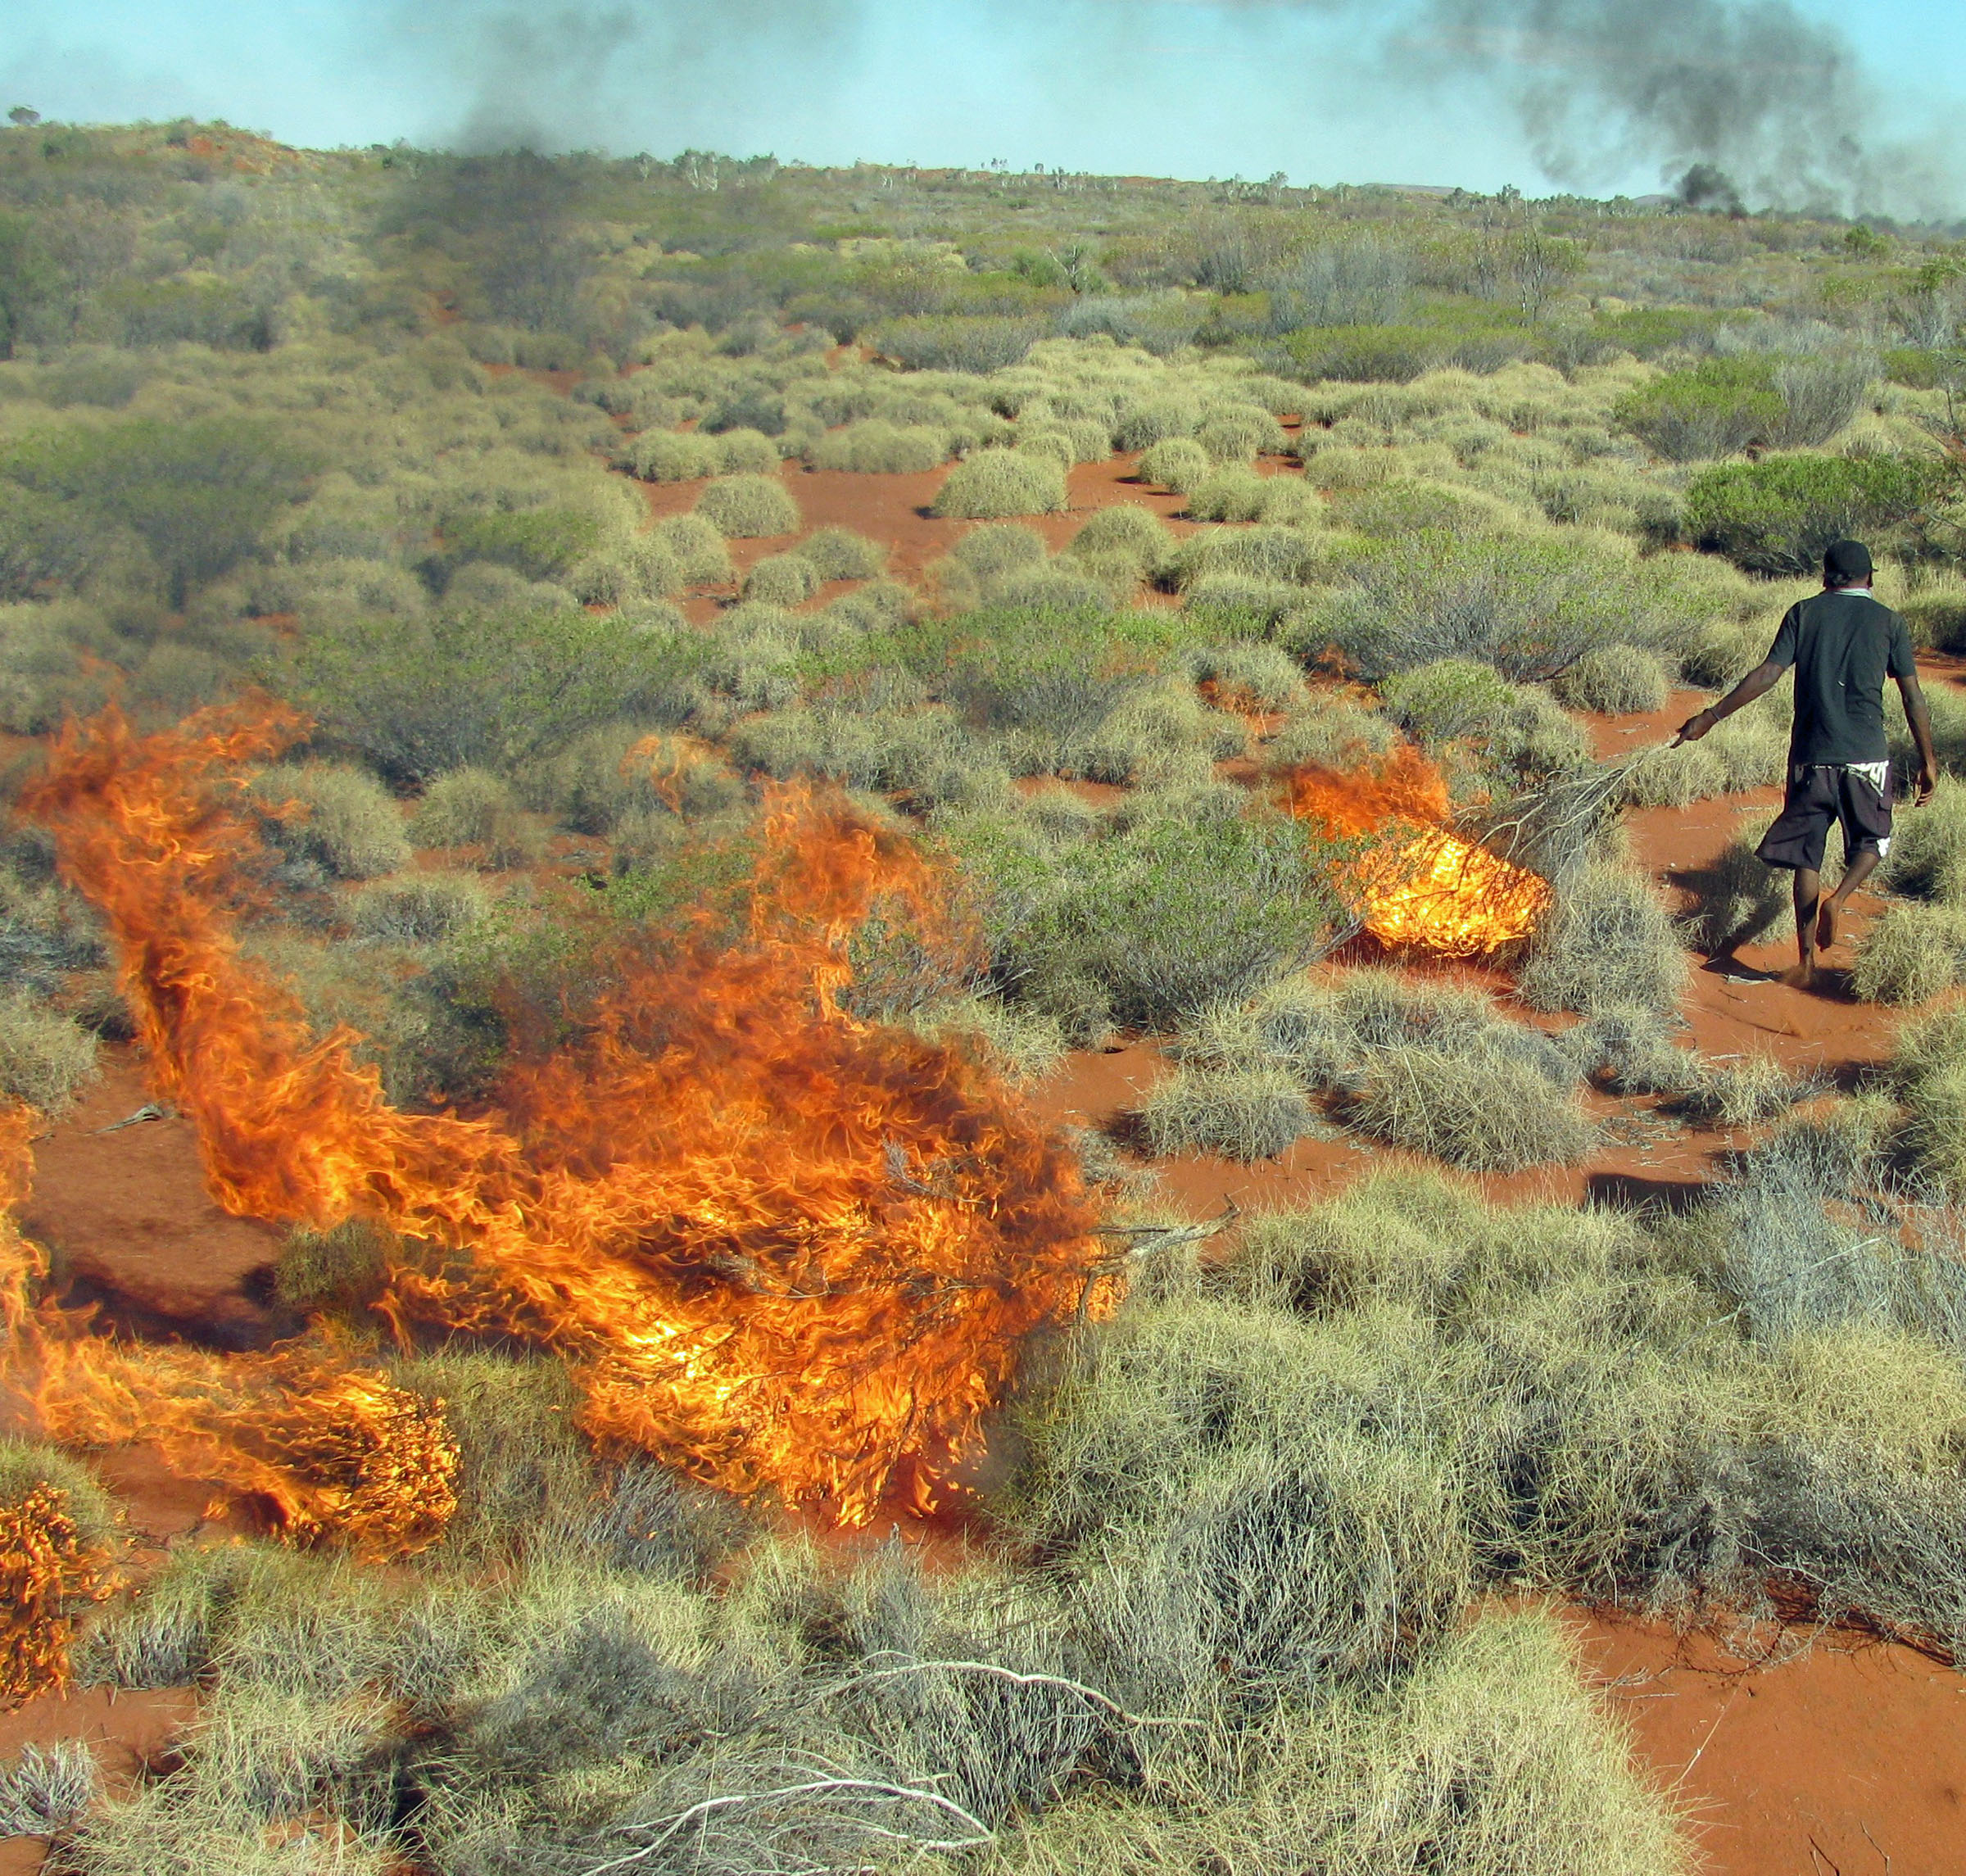 A member of the Martu Aboriginal community in western Australia sets fire to mature spinifex grass as a way to expose burrows occupied by sand monitor lizards, which are then hunted as a major food source. Hill kangaroos – also known as hill wallaroos or euros – are hunted in the same areas. A new study from the University of Utah and Stanford University found that setting such small-scale fires (10 acres or less) created a patchy landscape of different ages of vegetation, boosting kangaroo populations by providing them with shoot and fruits to eat in younger patches, and shelter from predators like dingoes in older patches of bush